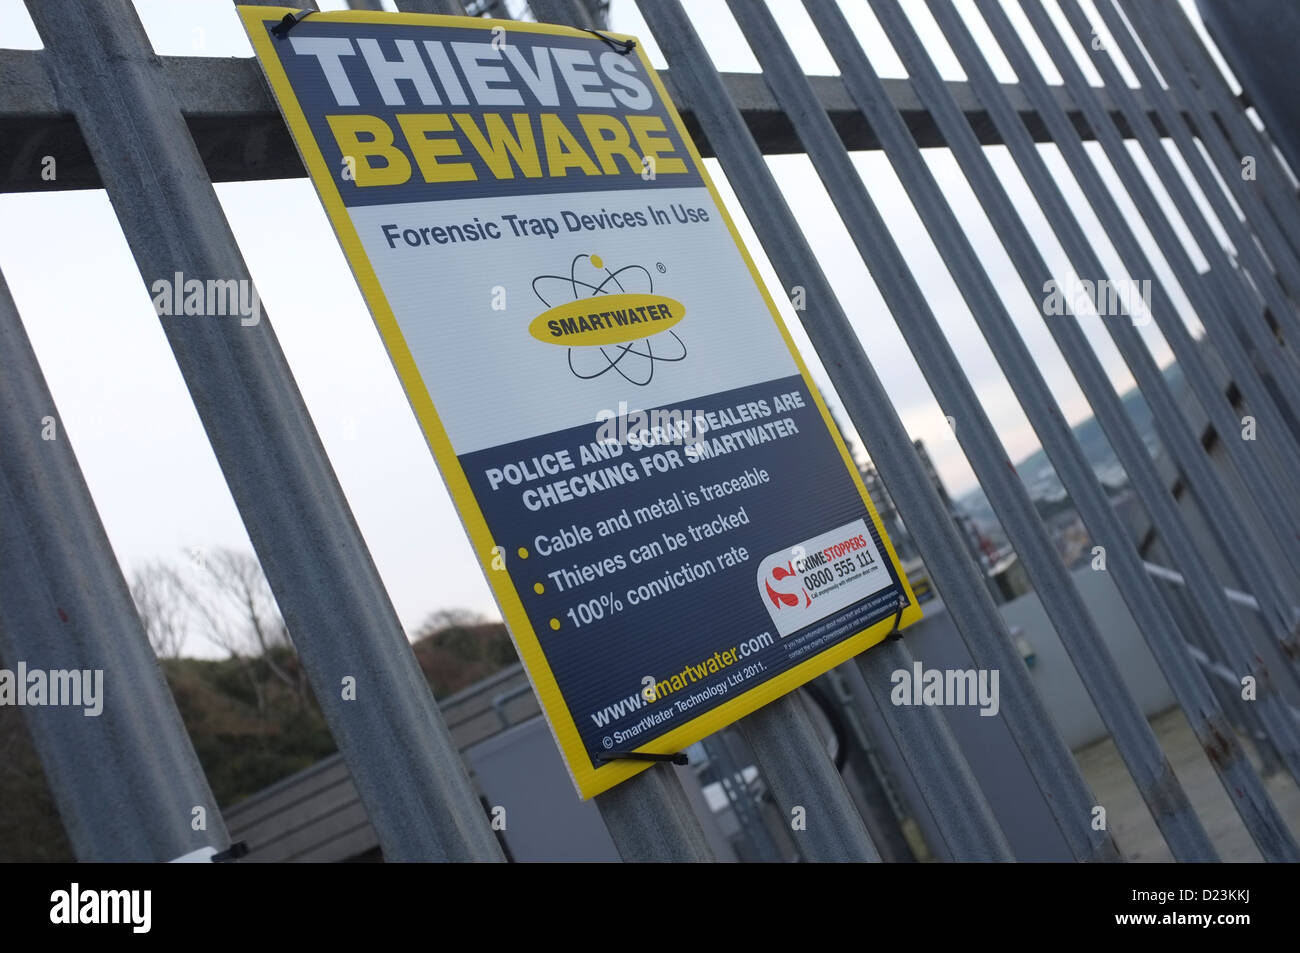 A sign warning scrap metal thieves of Smartwater 'forensic trap devices' in use, UK - Stock Image